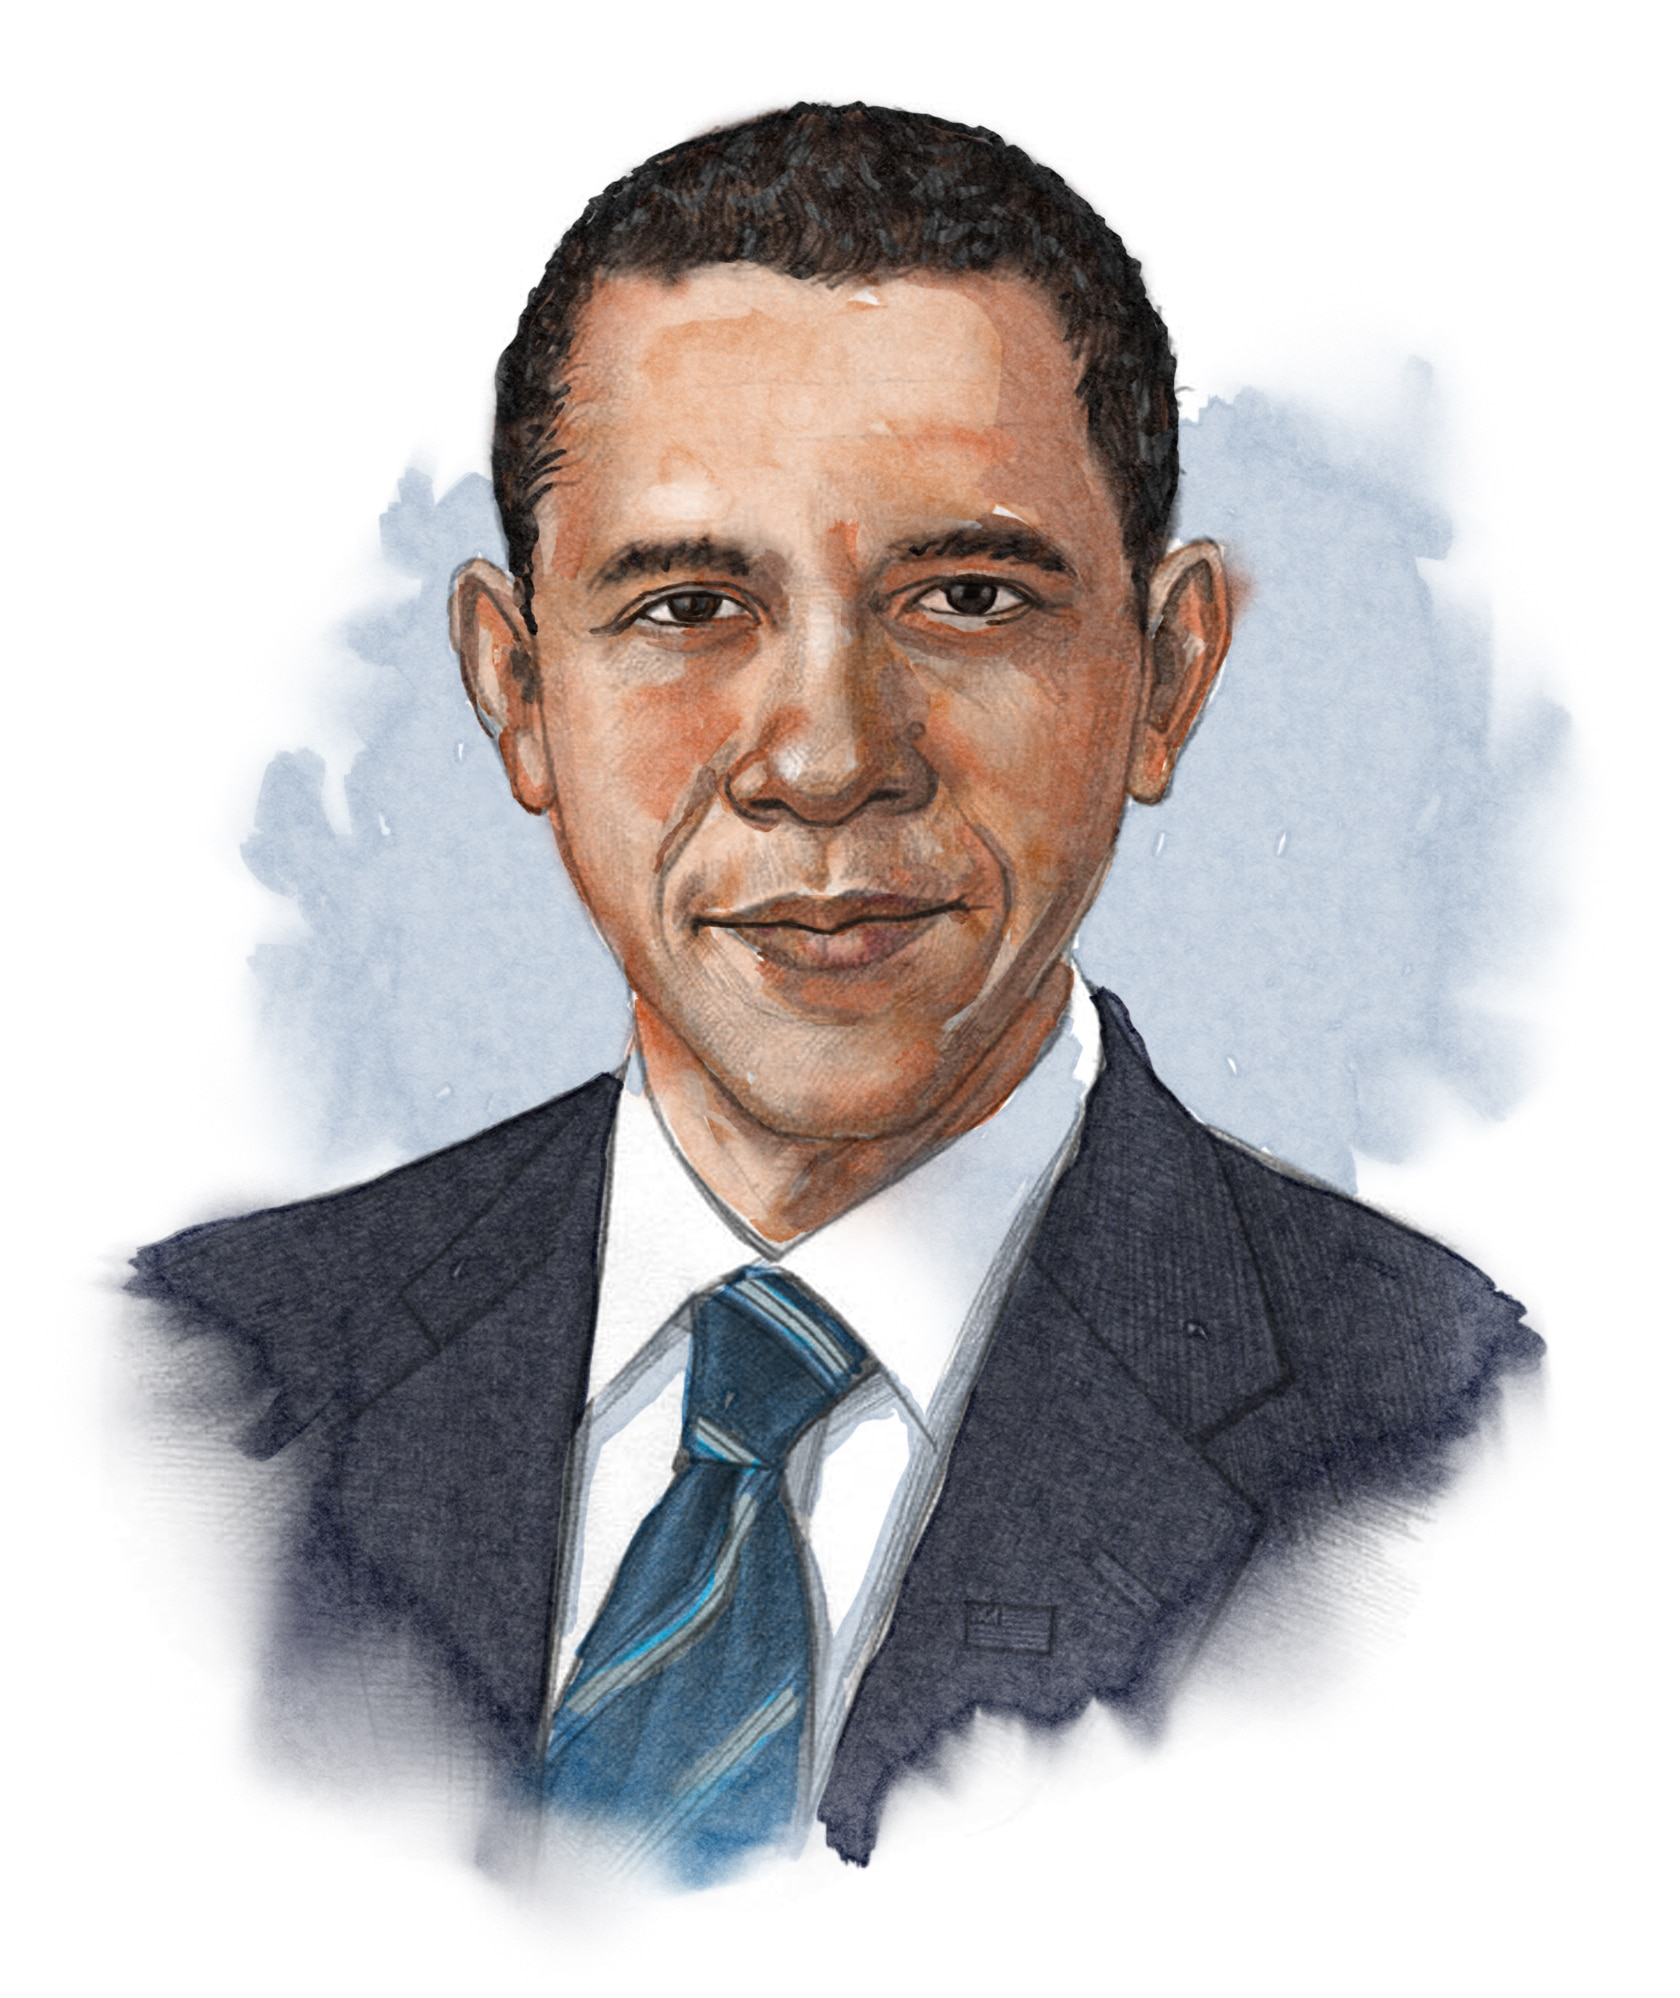 Illustrated image of President Obama (© siteseen.info)